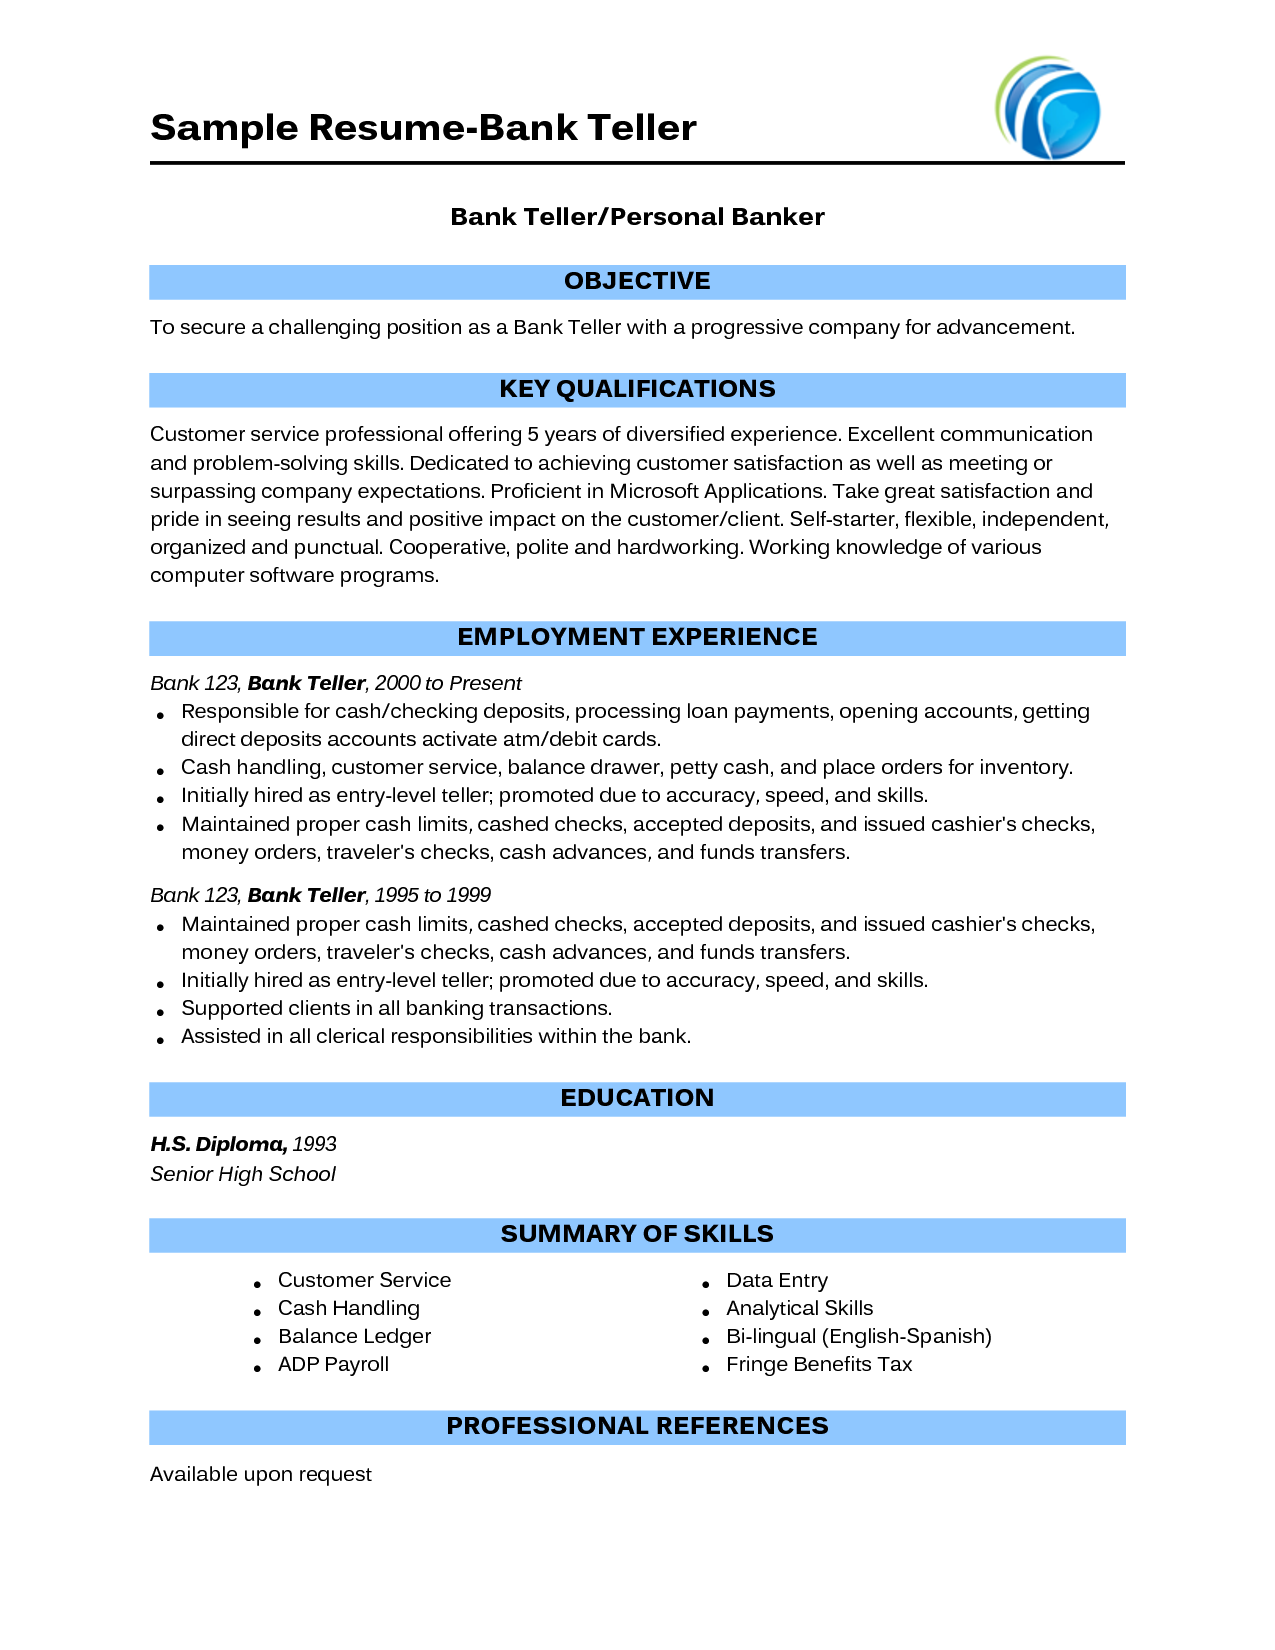 resume Teller Resume Sample sample bank teller resume no experiences httpwww jobresume most of people who are about to apply for job as a they consider take learn from bank